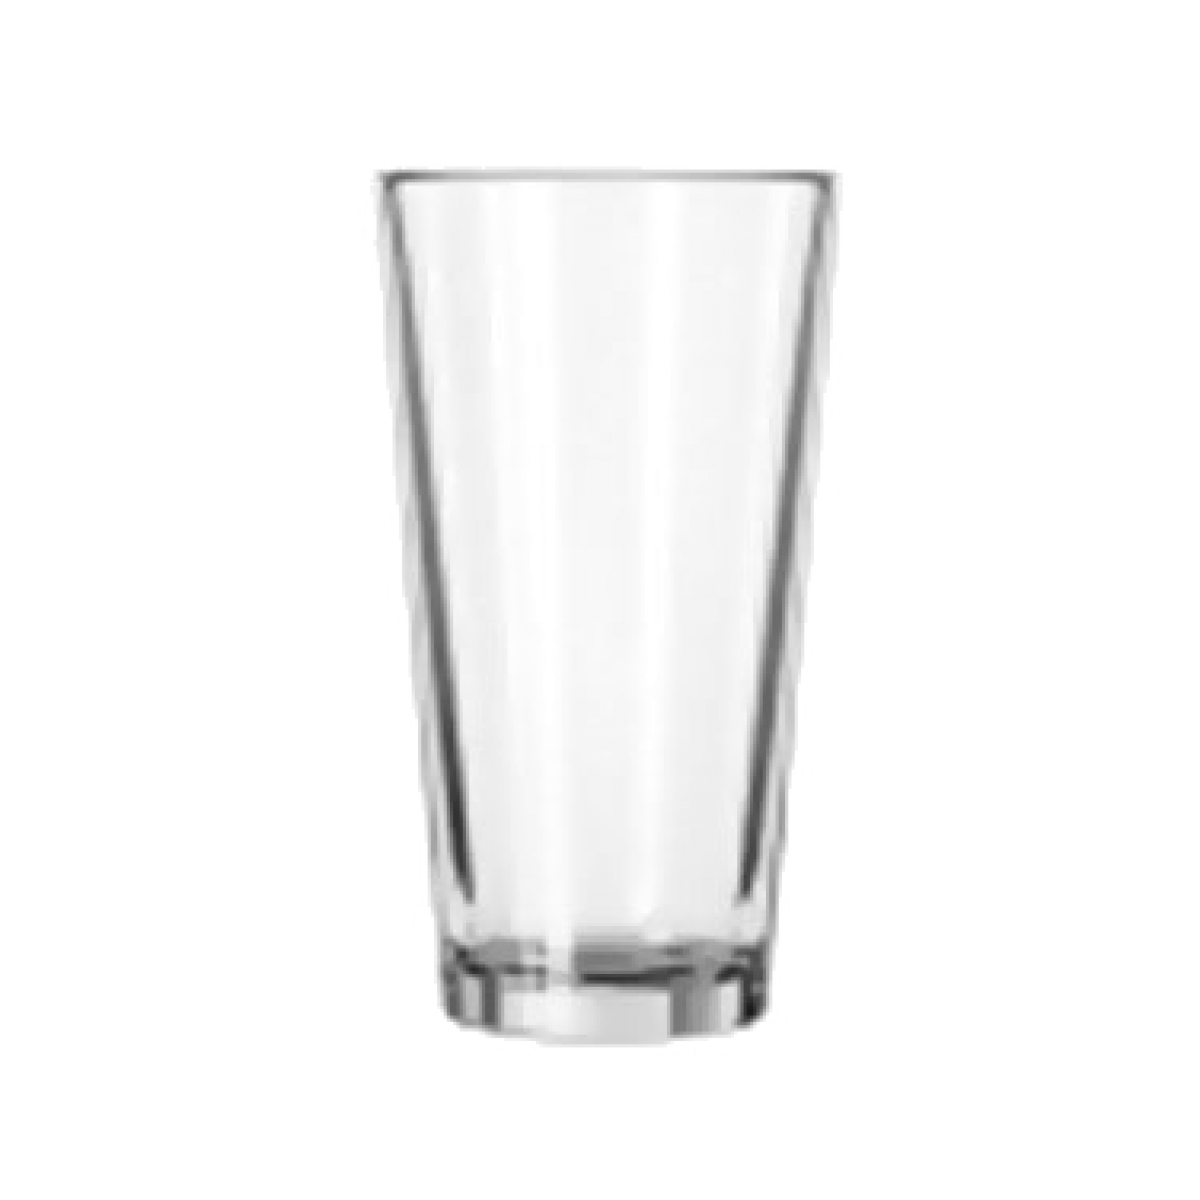 Buy libbey 15385 mixing glass 16 oz tall glass clear duratuff restaur - Chaise polycarbonate transparent ...